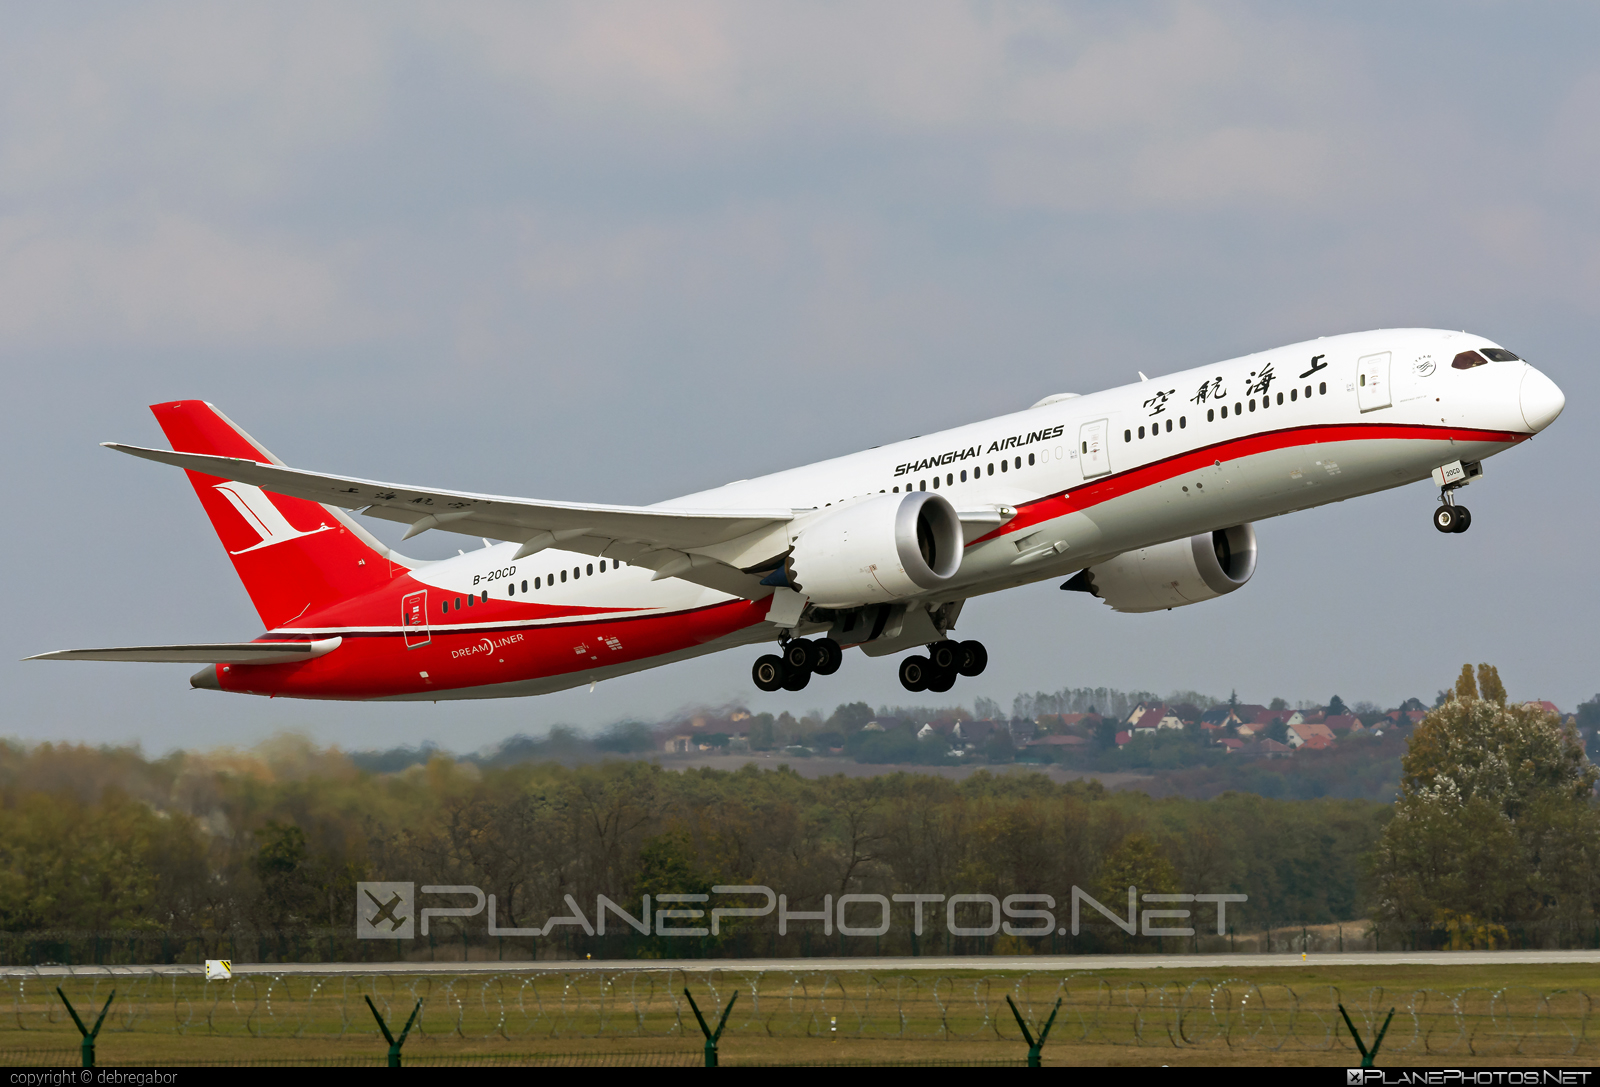 Boeing 787-9 Dreamliner - B-20CD operated by Shanghai Airlines #b787 #boeing #boeing787 #dreamliner